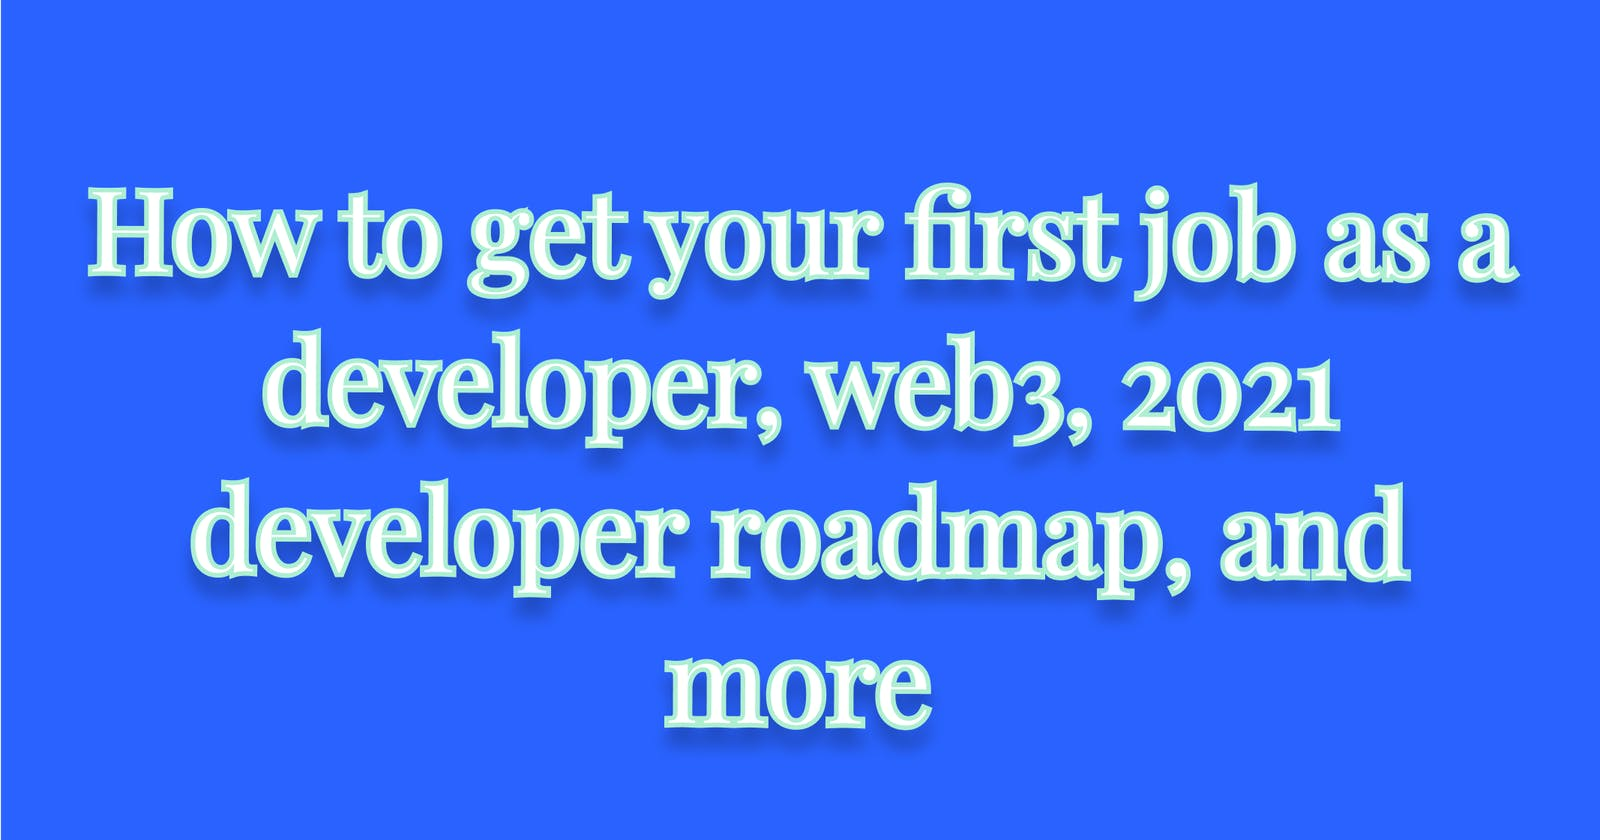 How to get your first job as a developer, web3, 2021 developer roadmap, and more  My 10 favorite Tech Twitter tweets from the past week: